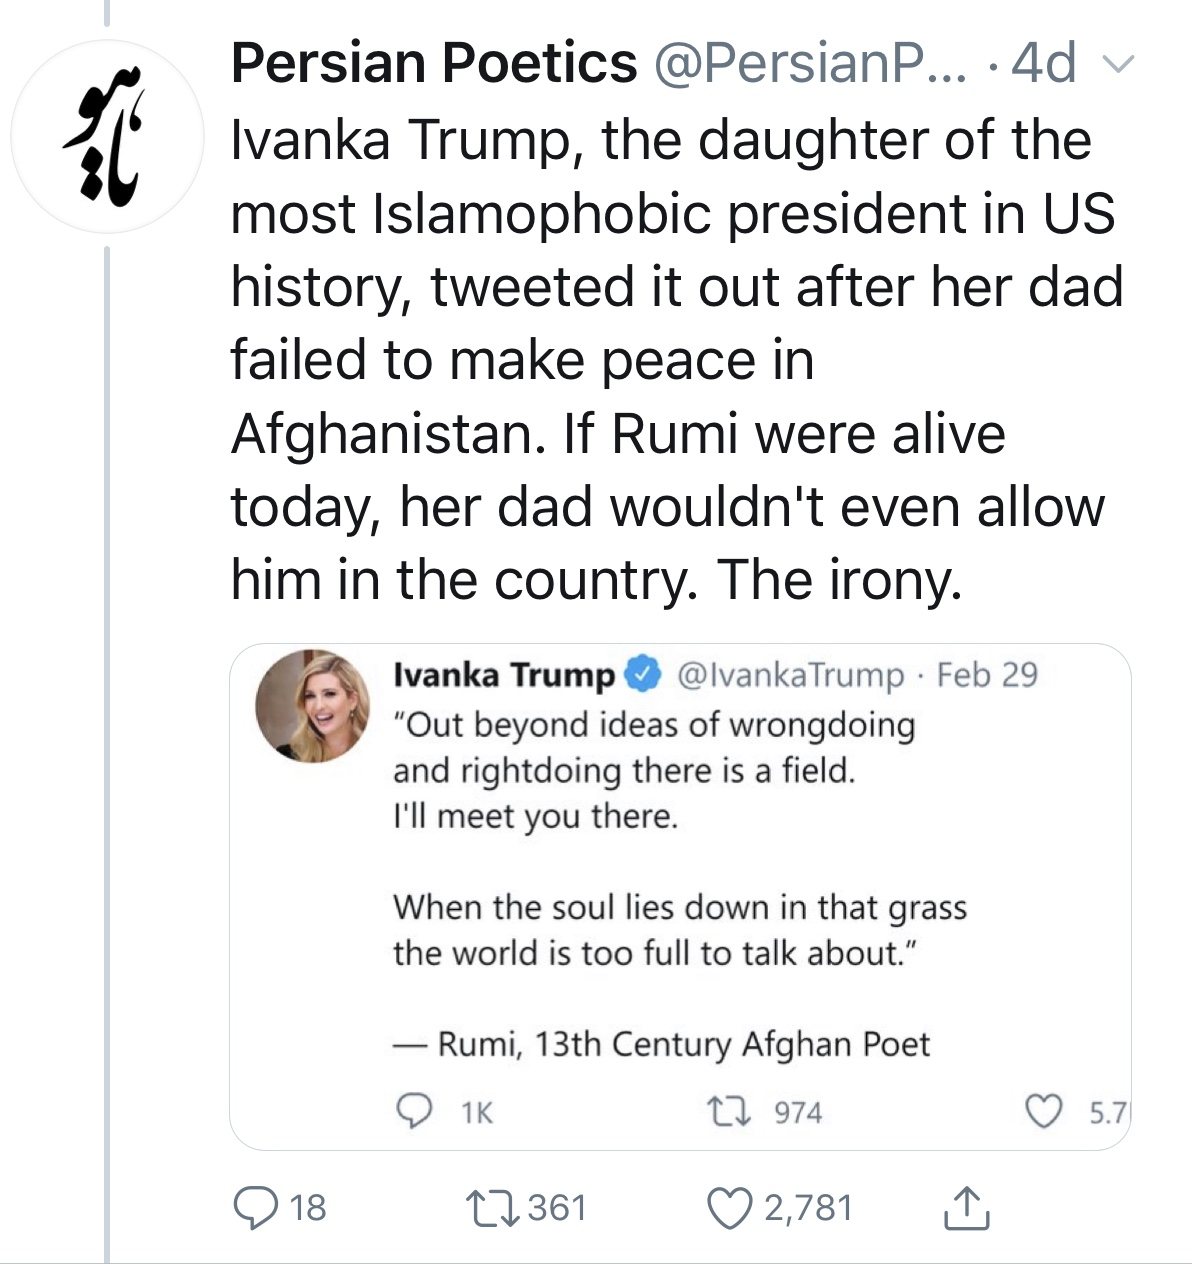 """Ivanka Trump tweeted Coleman Barks translation of Rumi's poem : """"Out beyond ideas of wrongdoing and rightdoing there is a field. I'll meet you there. When the soul lies down in that grass, the world is too full to talk about. Persian Poetics tweeted a picture of her tweet with the caption : Ivanka Trump, the daughter of the most Islamophobic president in US history, tweeted it out after her dad failed to make peace in Afghanistan. If Rumi were alive today, her dad wouldn't even allow him in the country. The irony"""